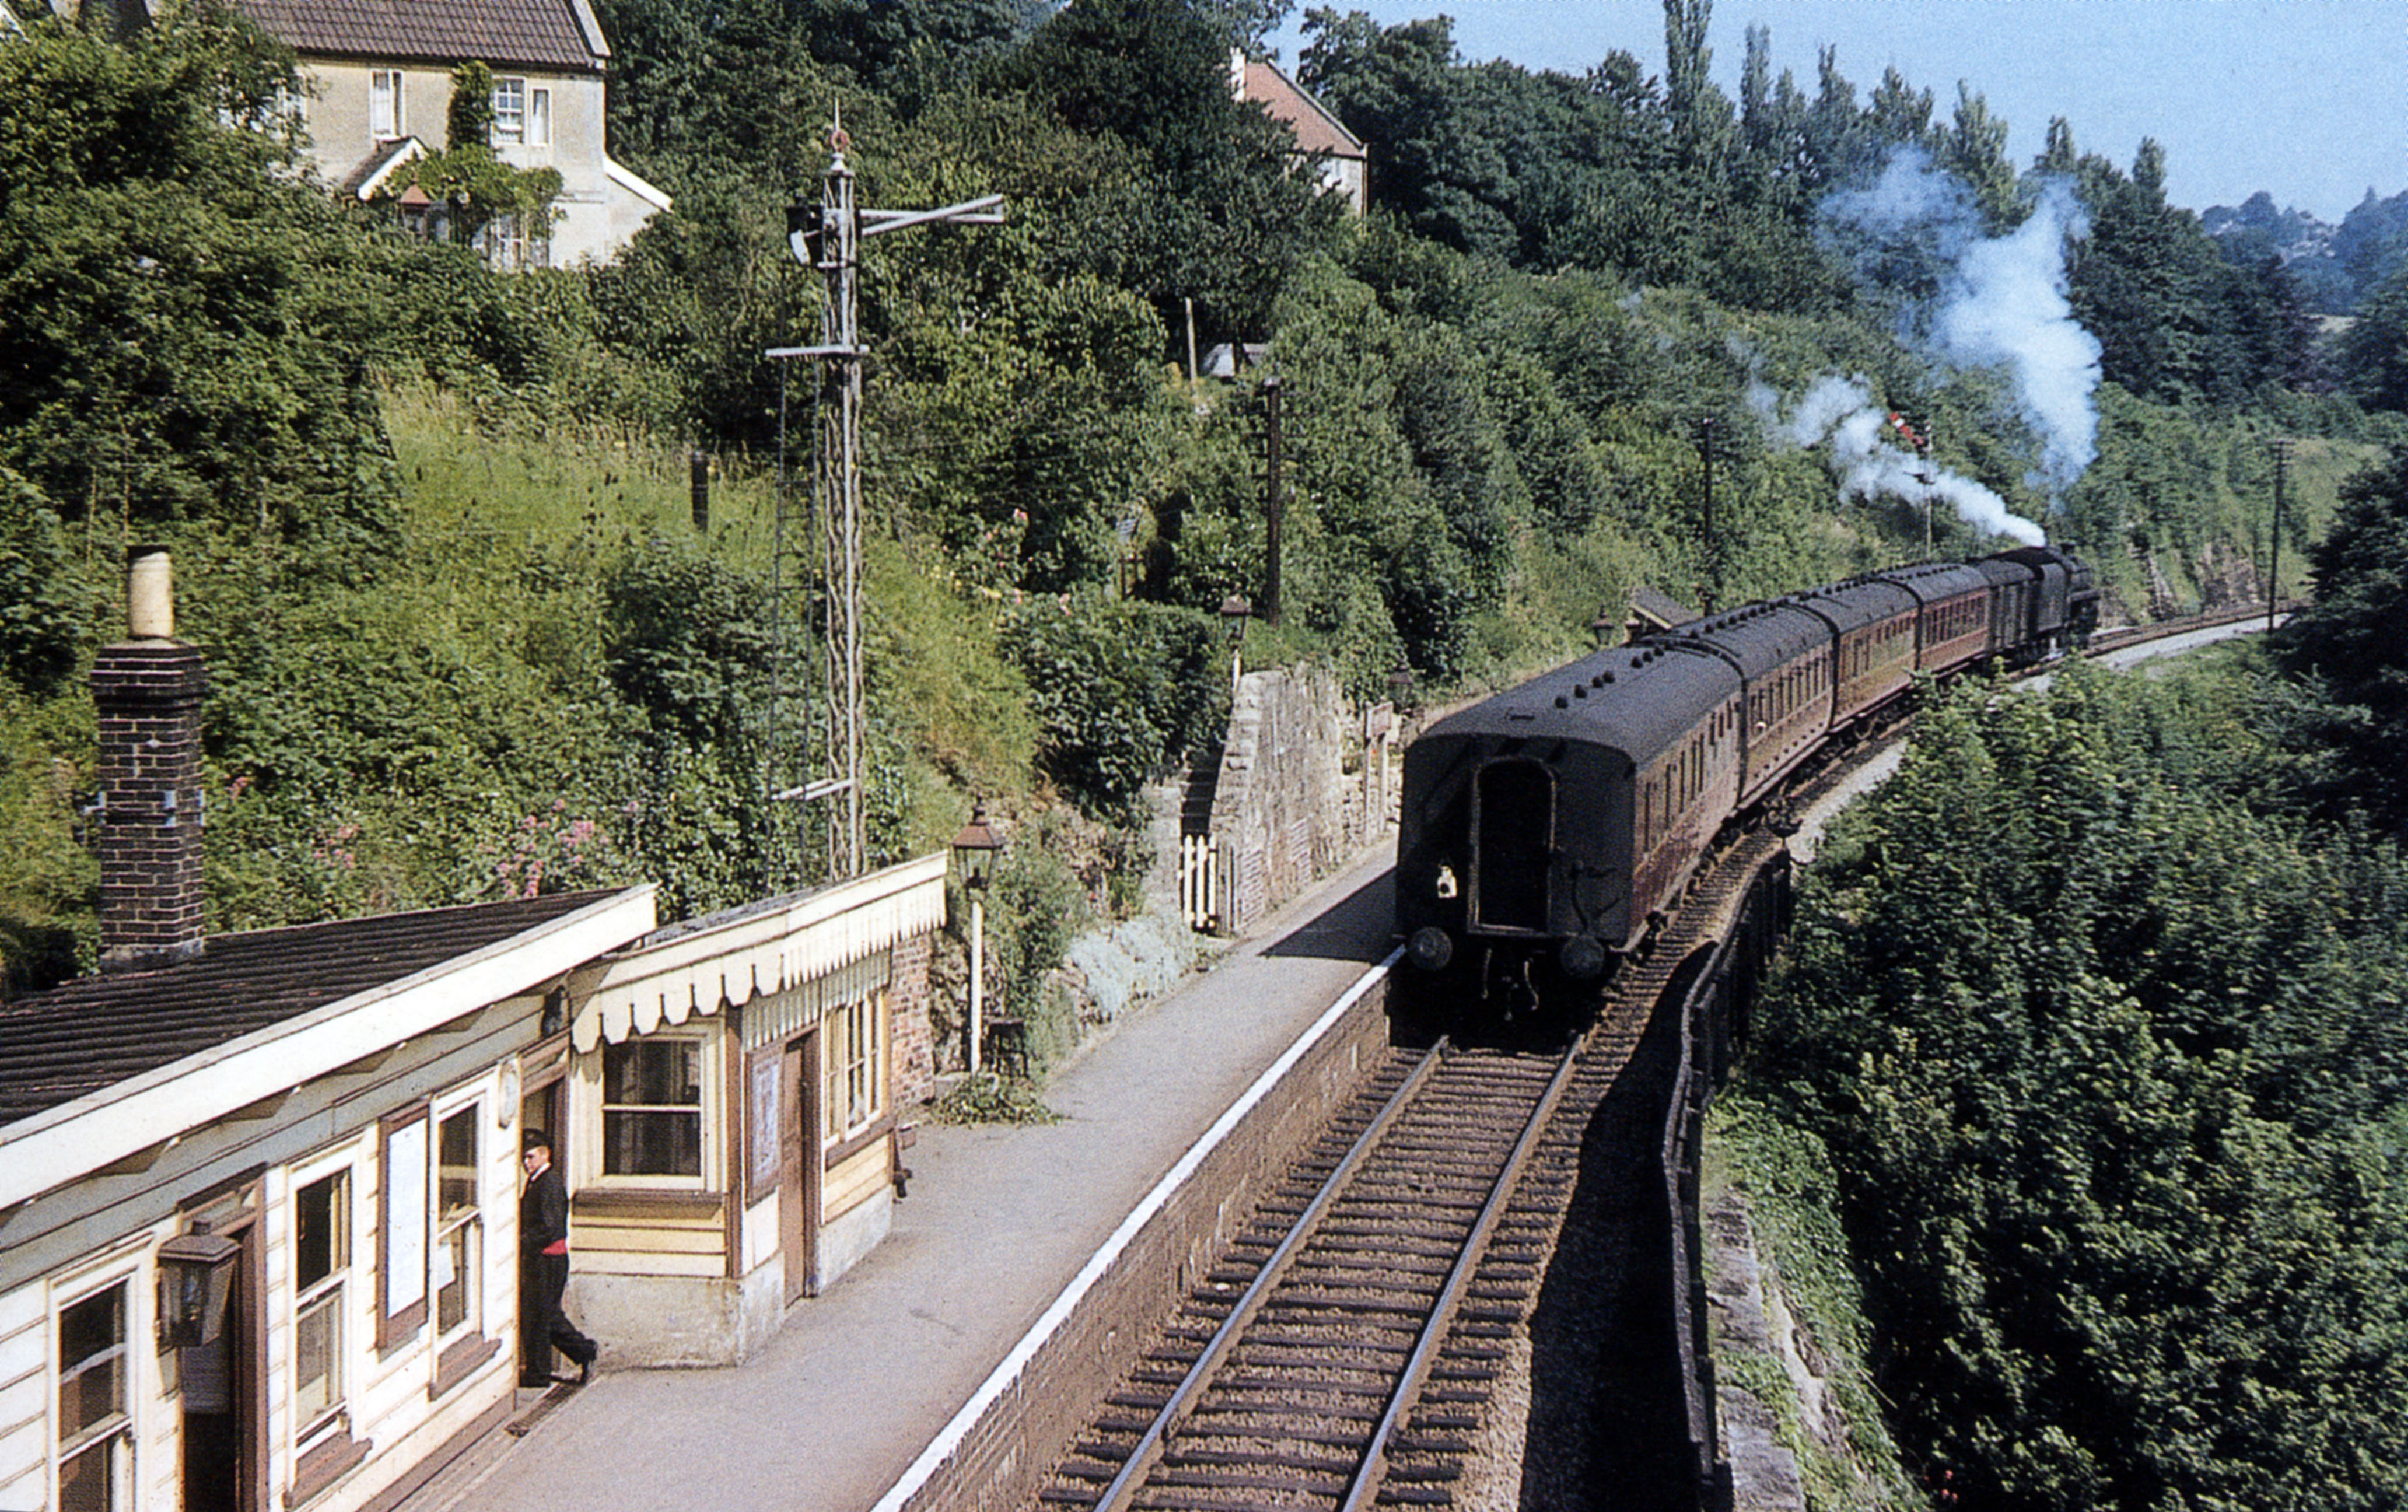 Alextrack Model Railways Midford Prototype Photographs Click Here For A Photograph Of The Dont